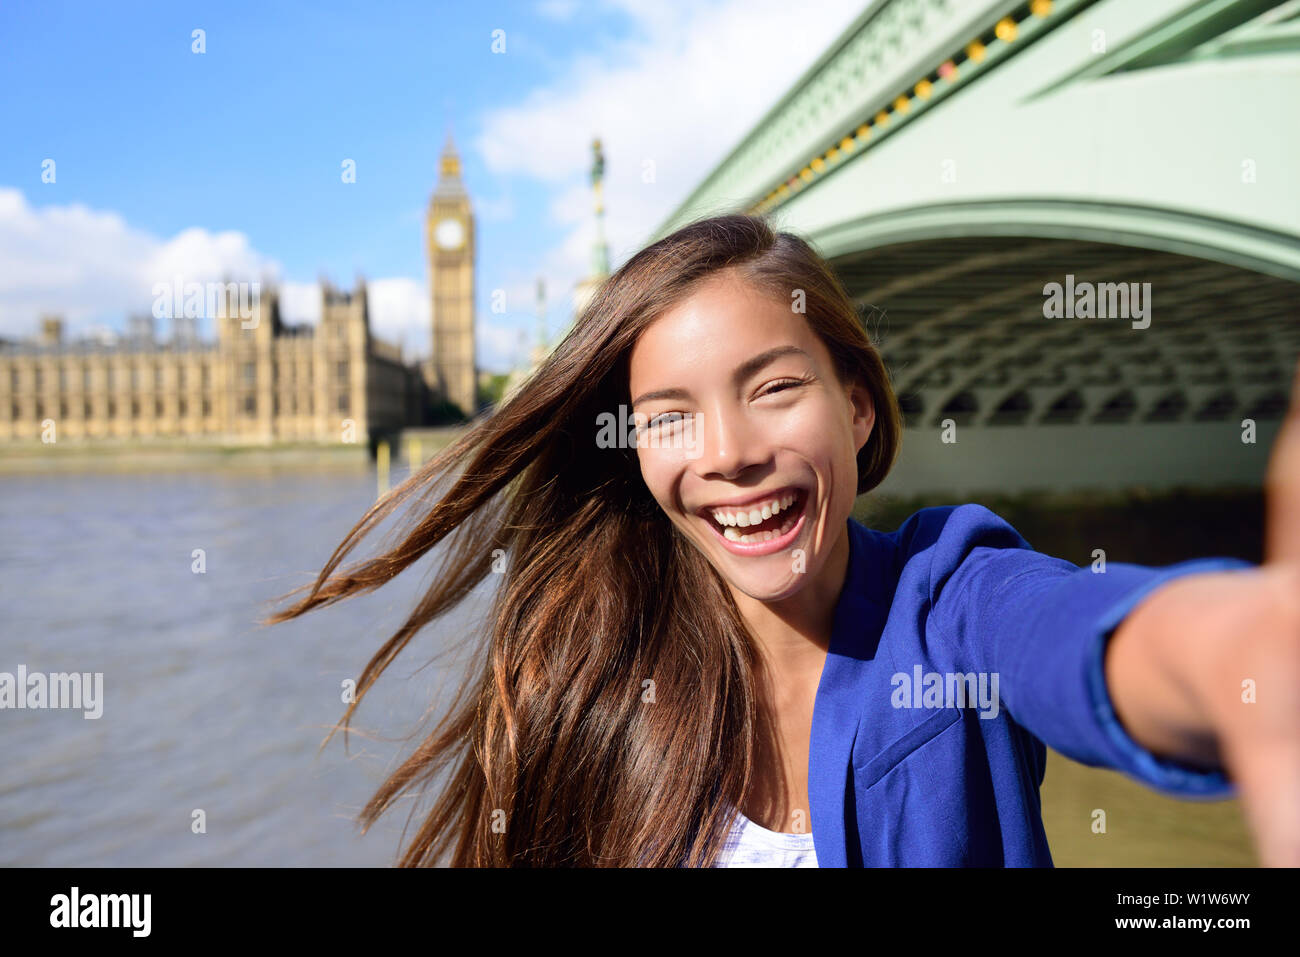 London travel selfie businesswoman. Joyful young casual business woman smiling at camera with Thames river, Big Ben and Westminster bridge background. Asian tourist using smartphone for picture. - Stock Image